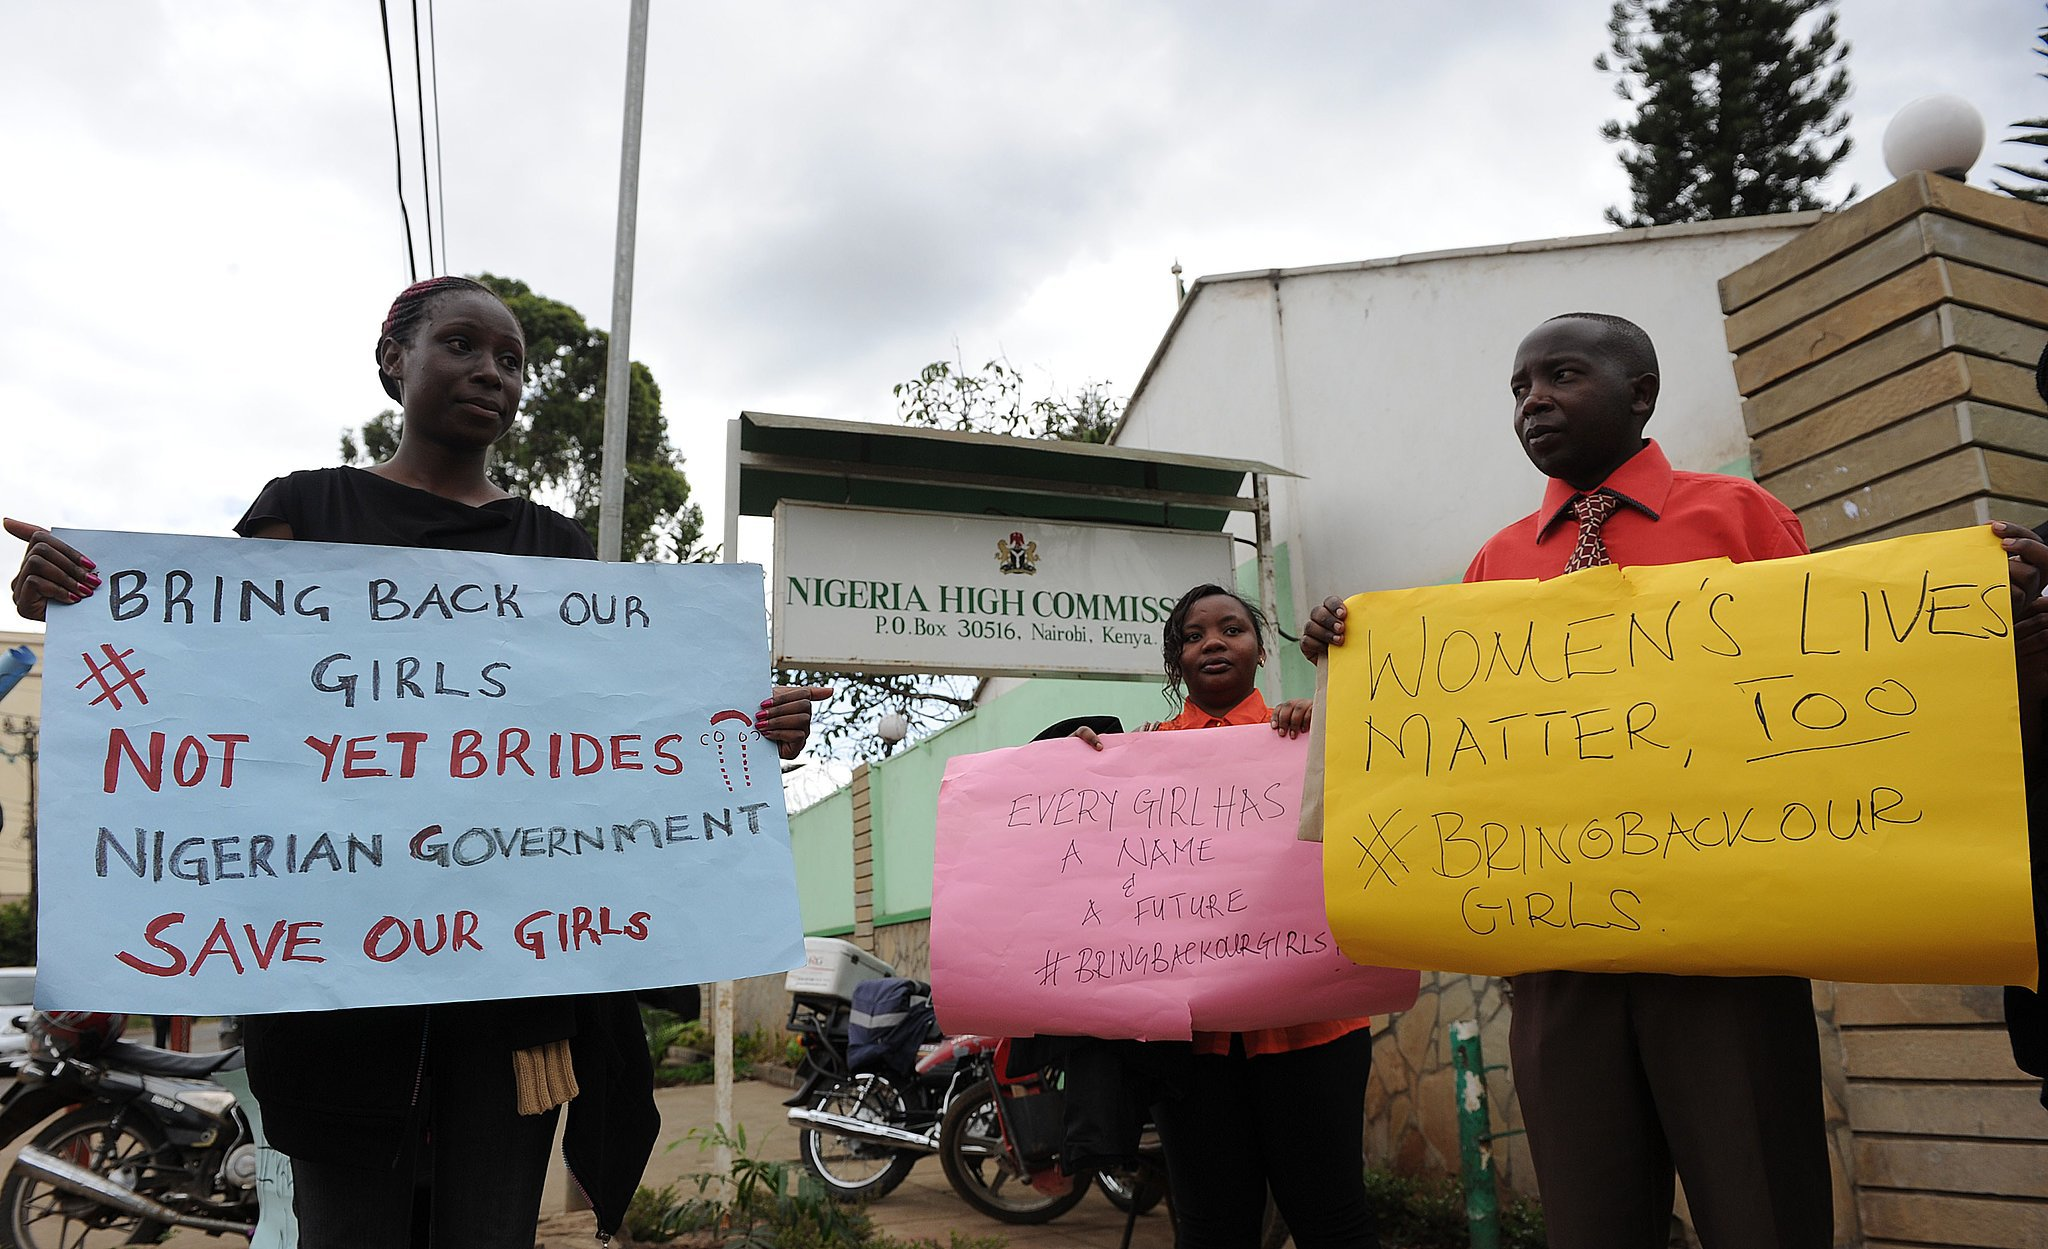 People showed their support for the kidnapped girls in Kenya.